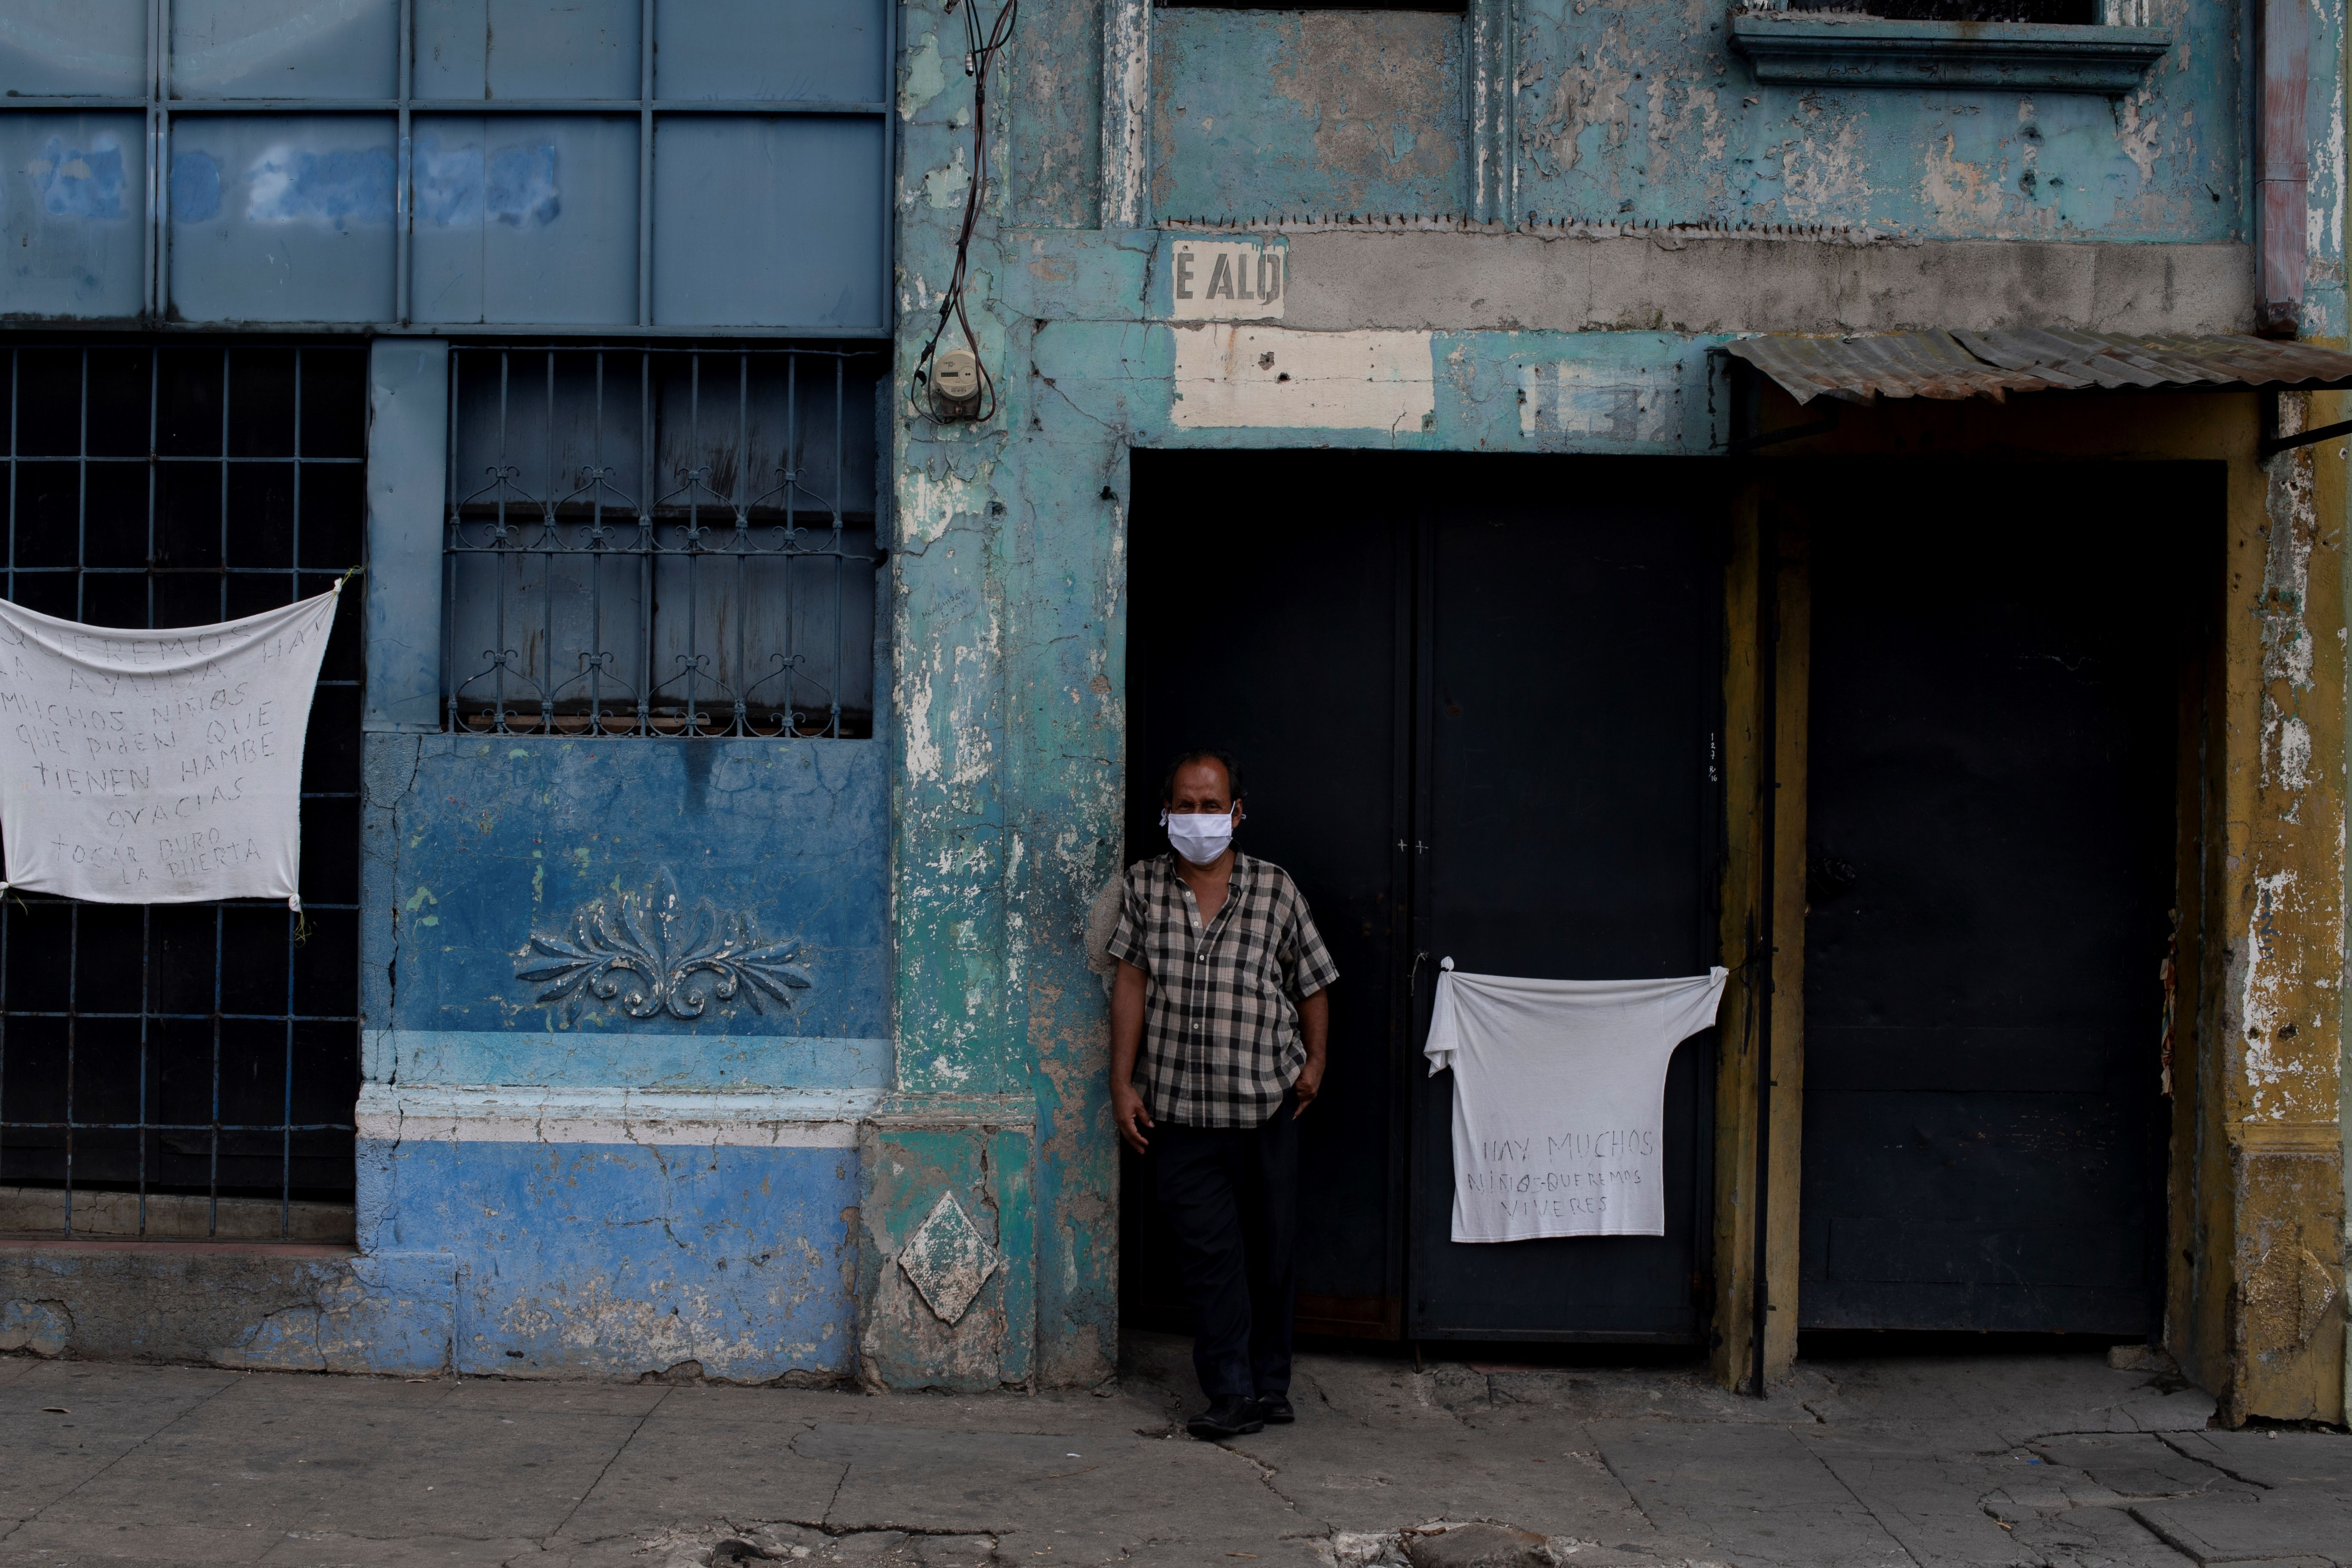 A man stands outside his house, flanked by white cloths displayed to demand humanitarian aid during the home quarantine against the spread of the novel COVID-19 coronavirus, at Concepcion neighborhood in San Salvador on May 23, 2020. - El Salvador's Supreme Court of Justice (CSJ) revalidated on the eve the state of emergency decree -in force since last March- to face the COVID-19 pandemic, after intervening in a legal battle between the Legislative Assembly and the government of President Nayik Bukele. (Photo by Yuri CORTEZ / AFP) (Photo by YURI CORTEZ/AFP via Getty Images)